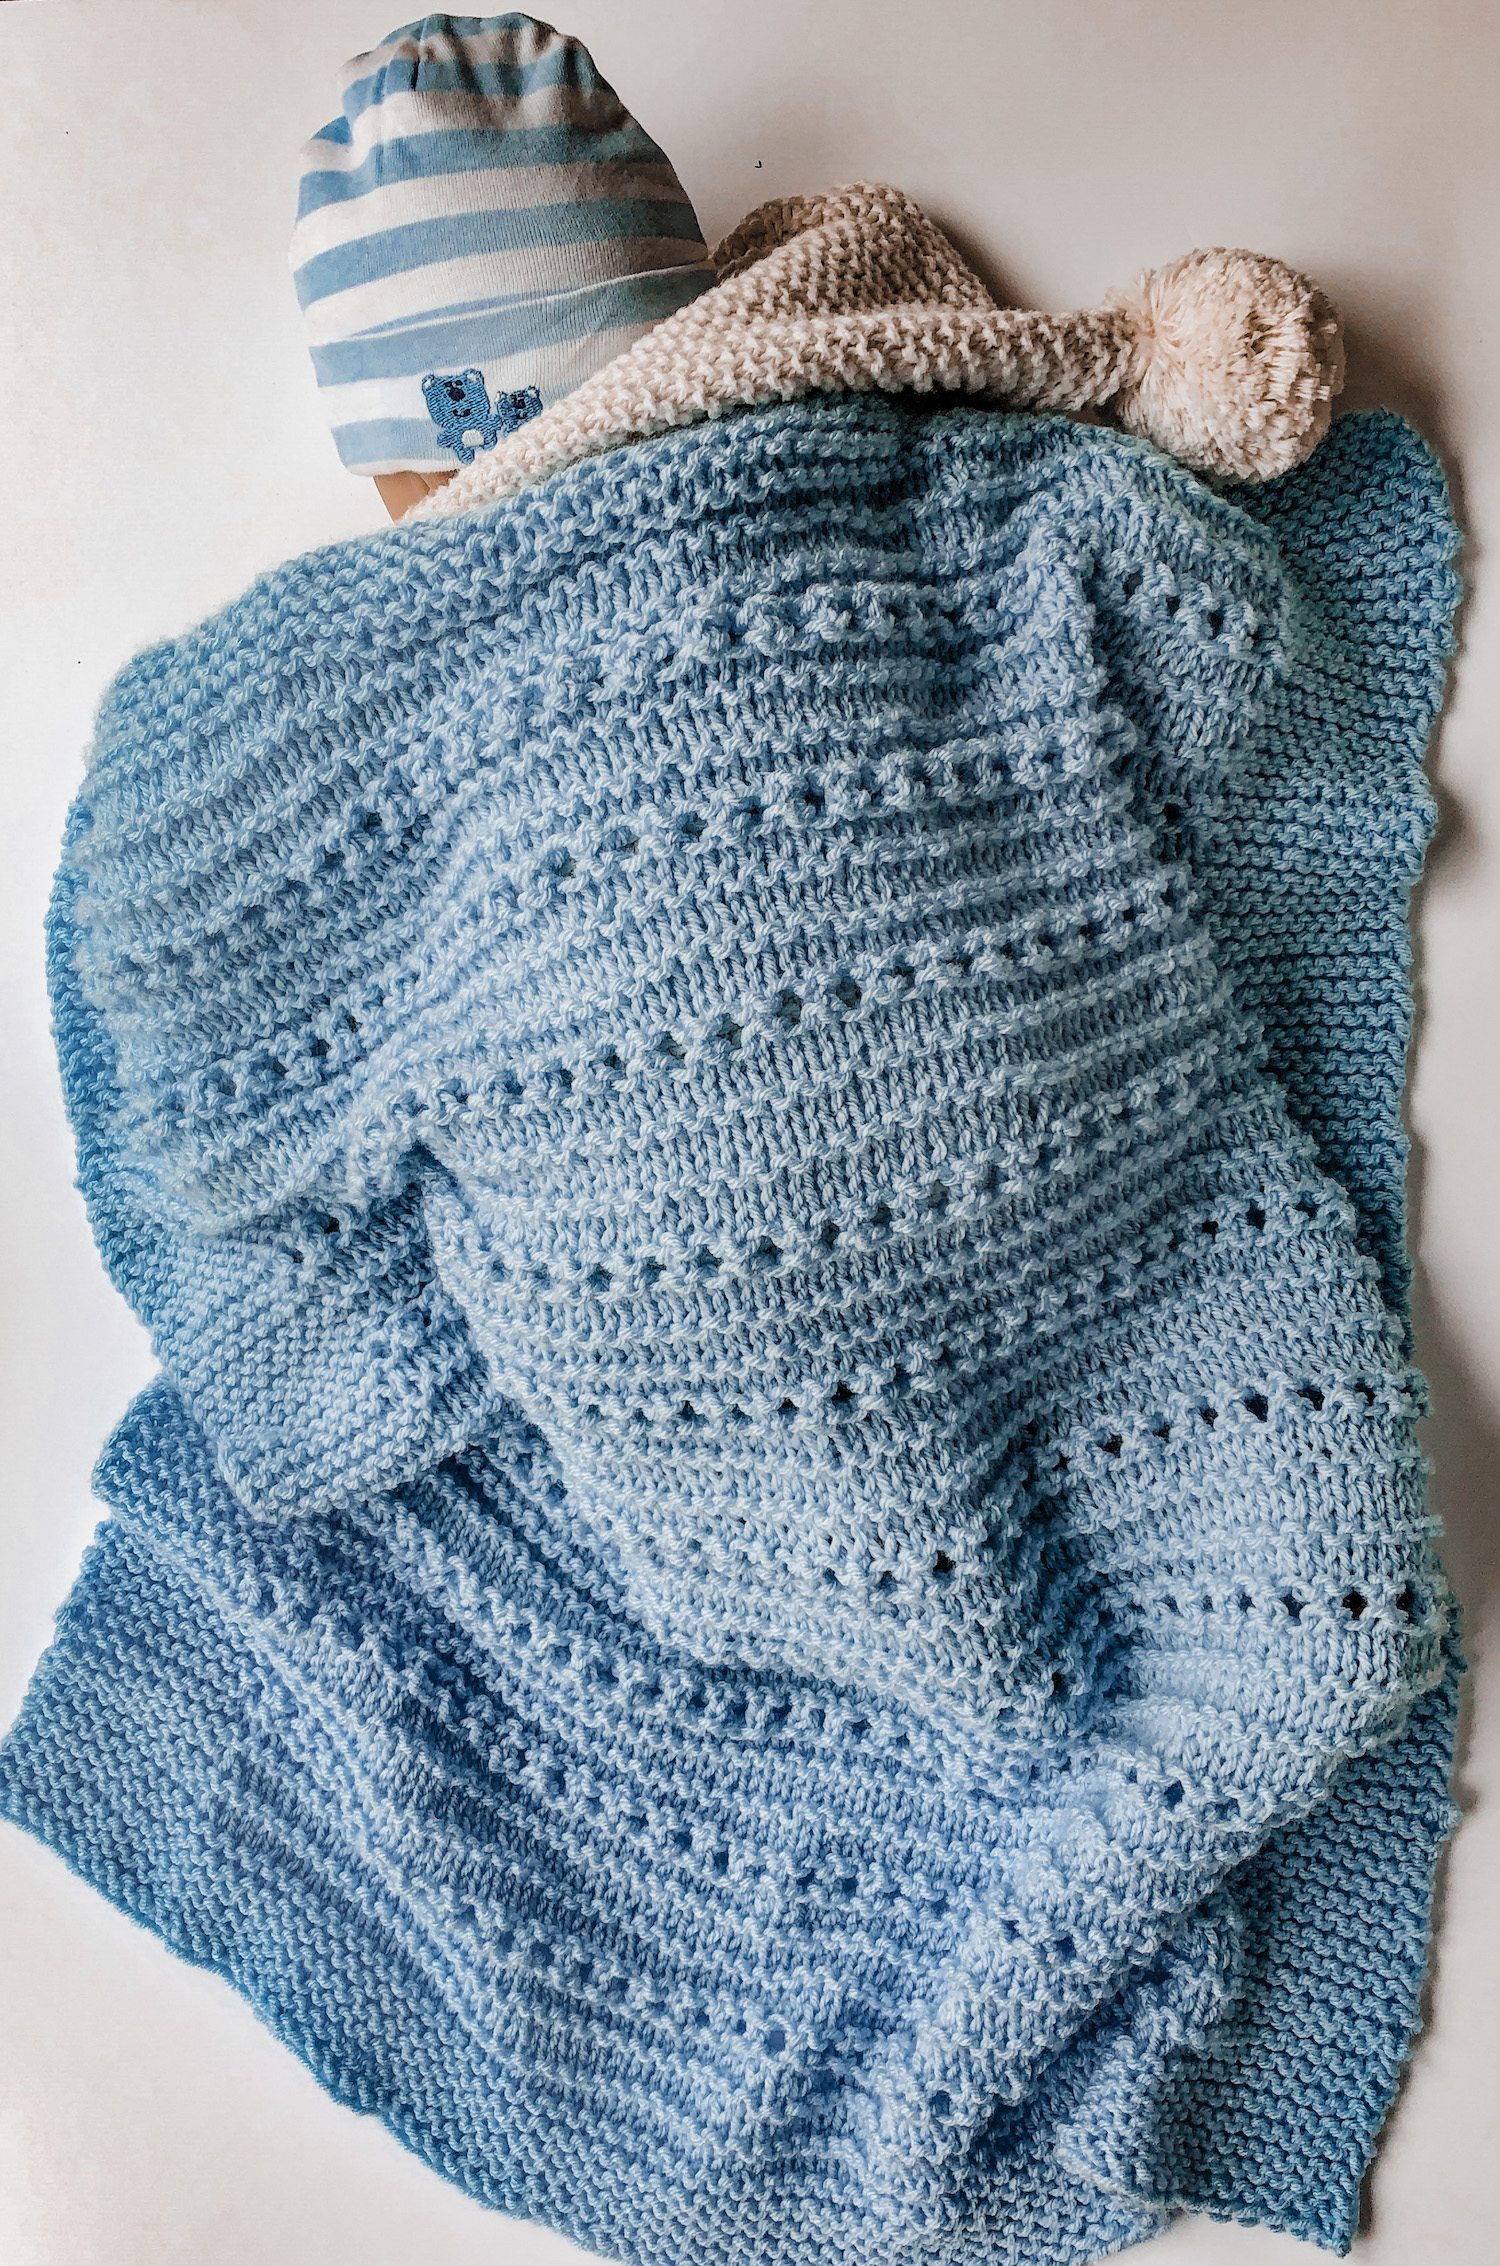 How To Knit A Cuddly Soft Baby Blanket Candyloucreations